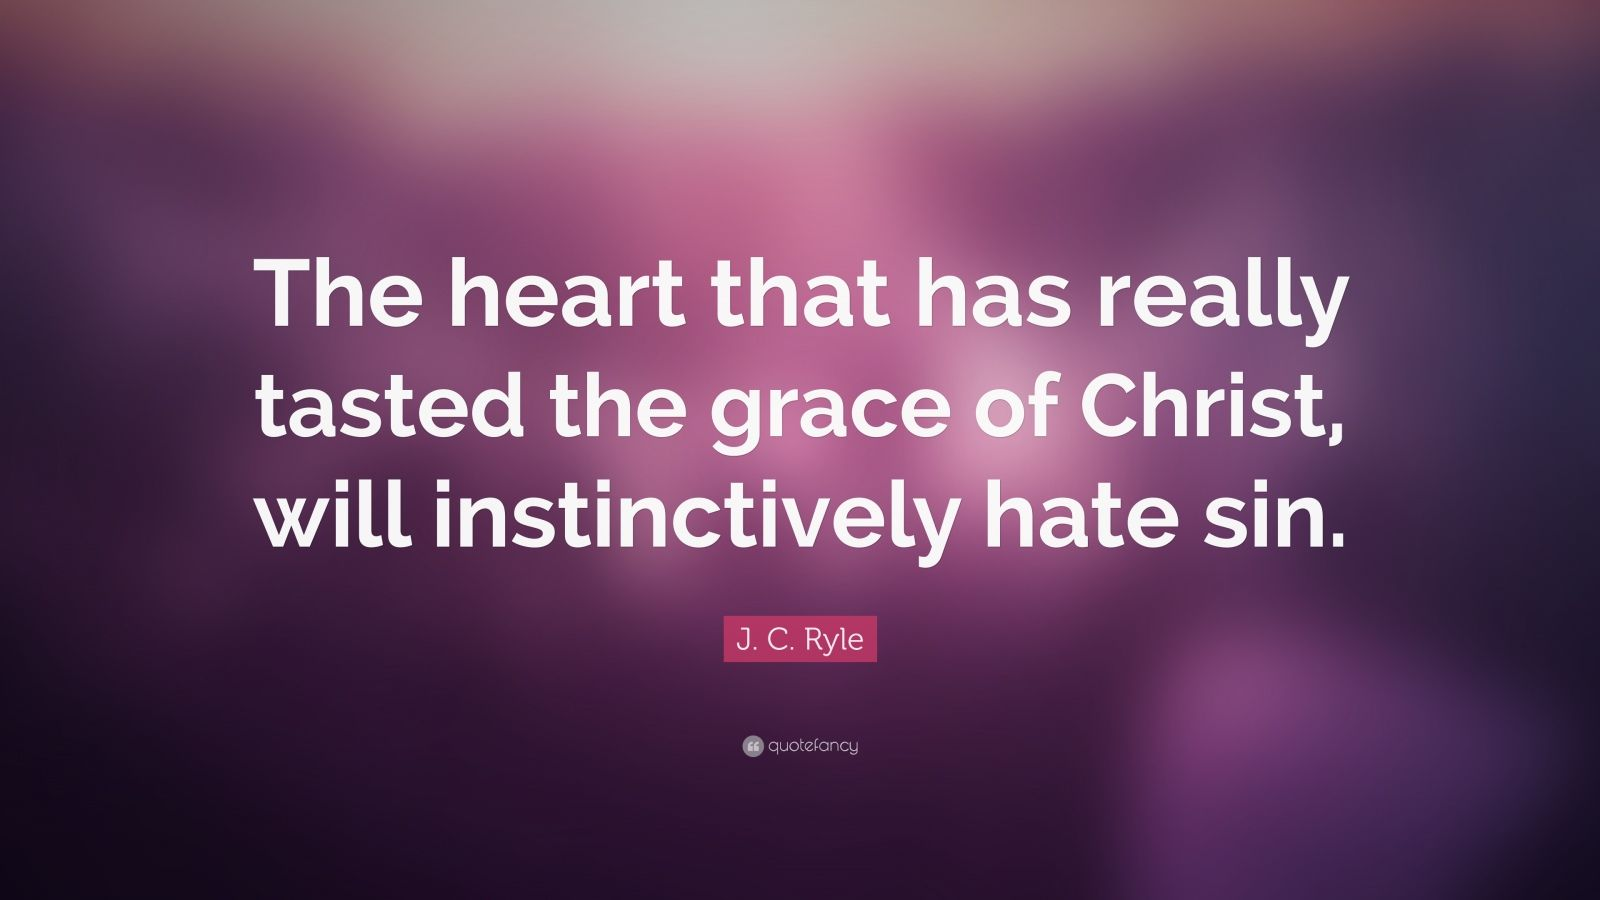 """J. C. Ryle Quote: """"The heart that has really tasted the grace of Christ, will instinctively hate sin."""""""